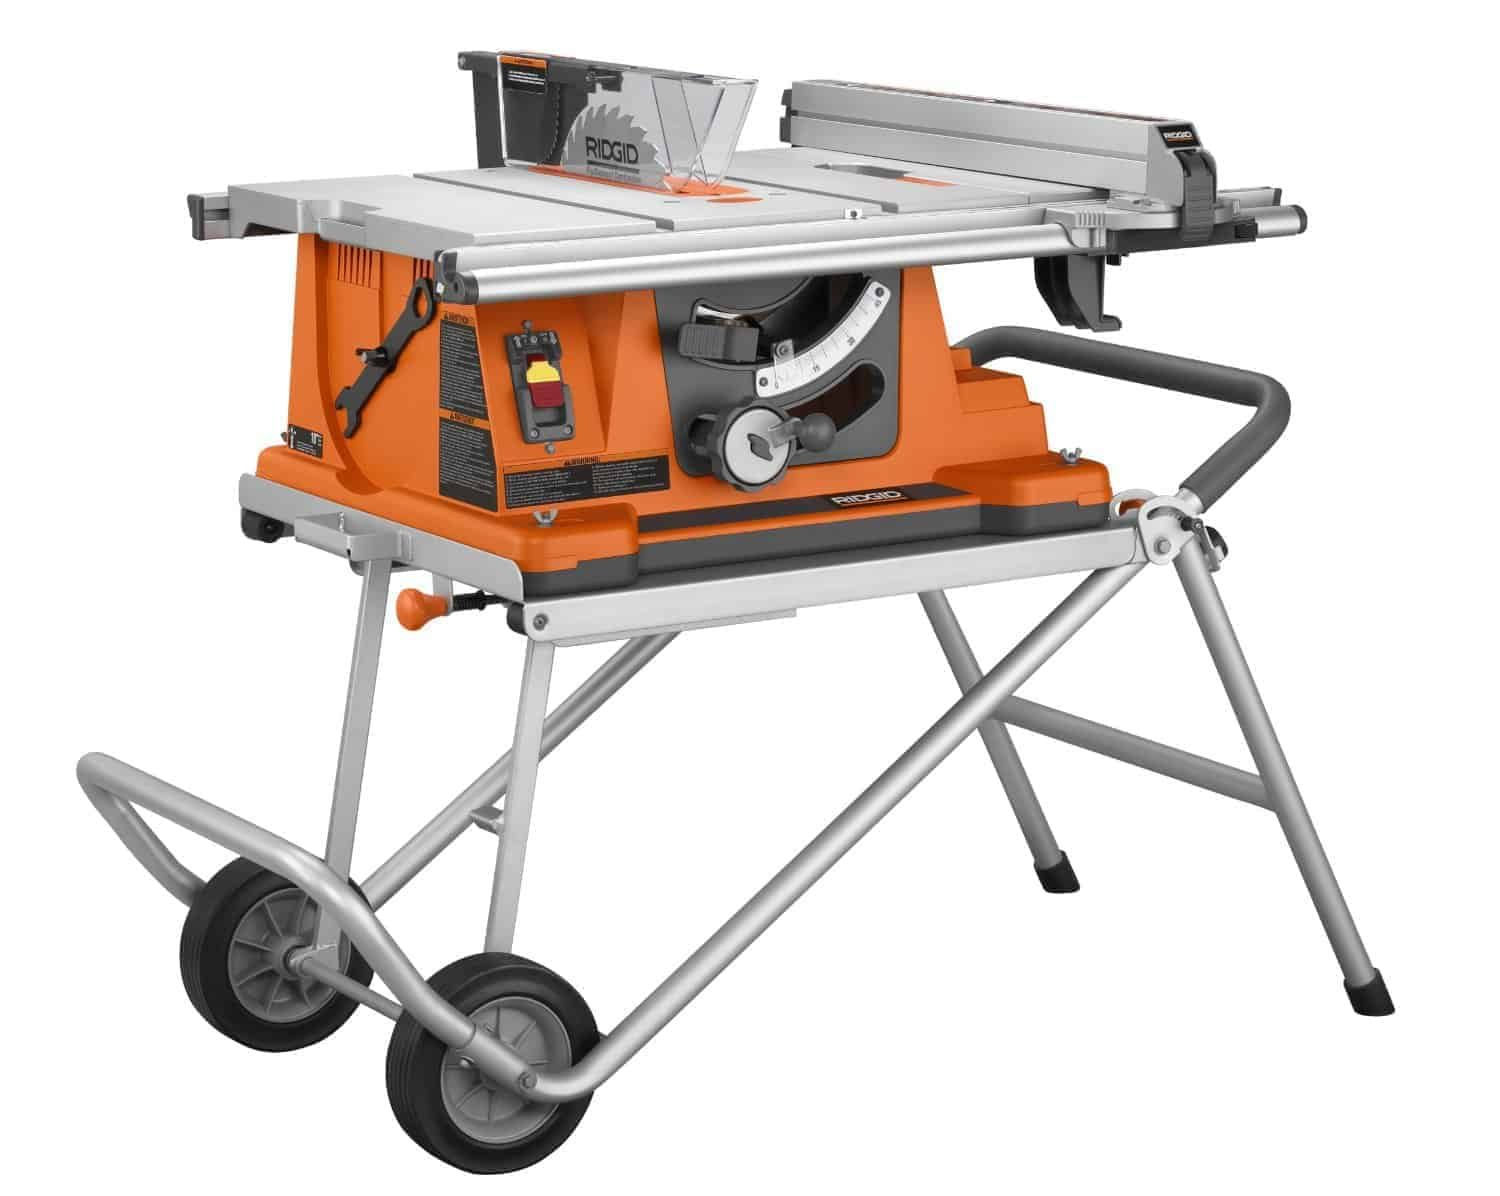 Ridgid Table Saw Warranty Registration